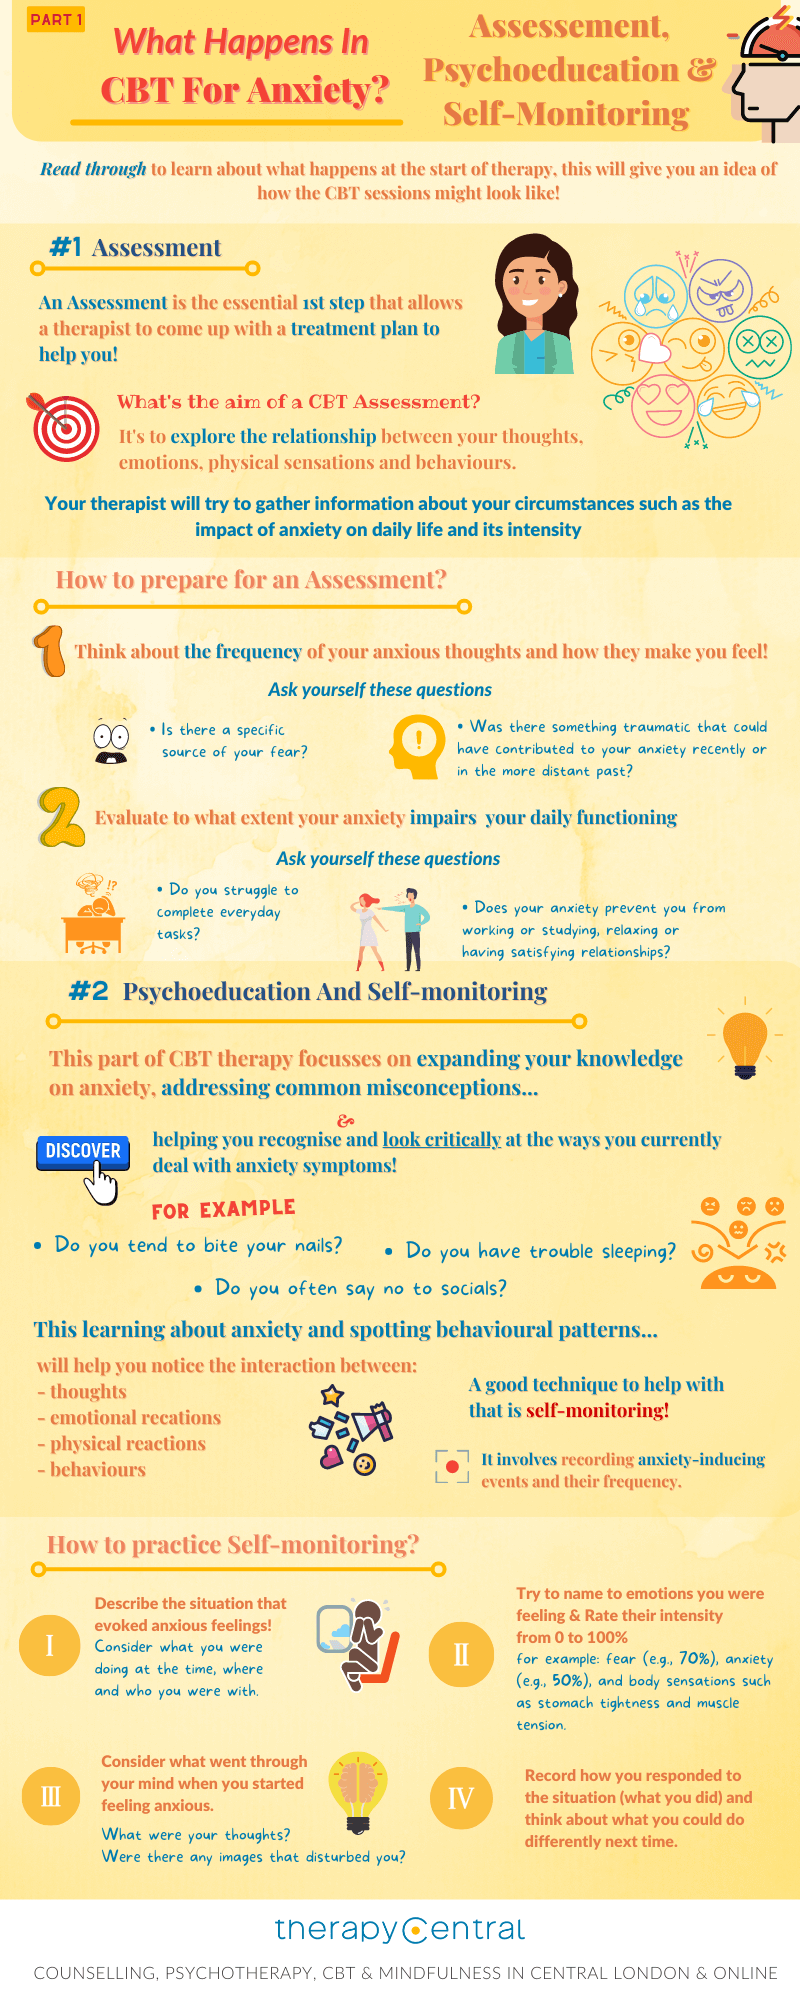 Infographic - What Happens CBT Anxiety - Self-Monitoring